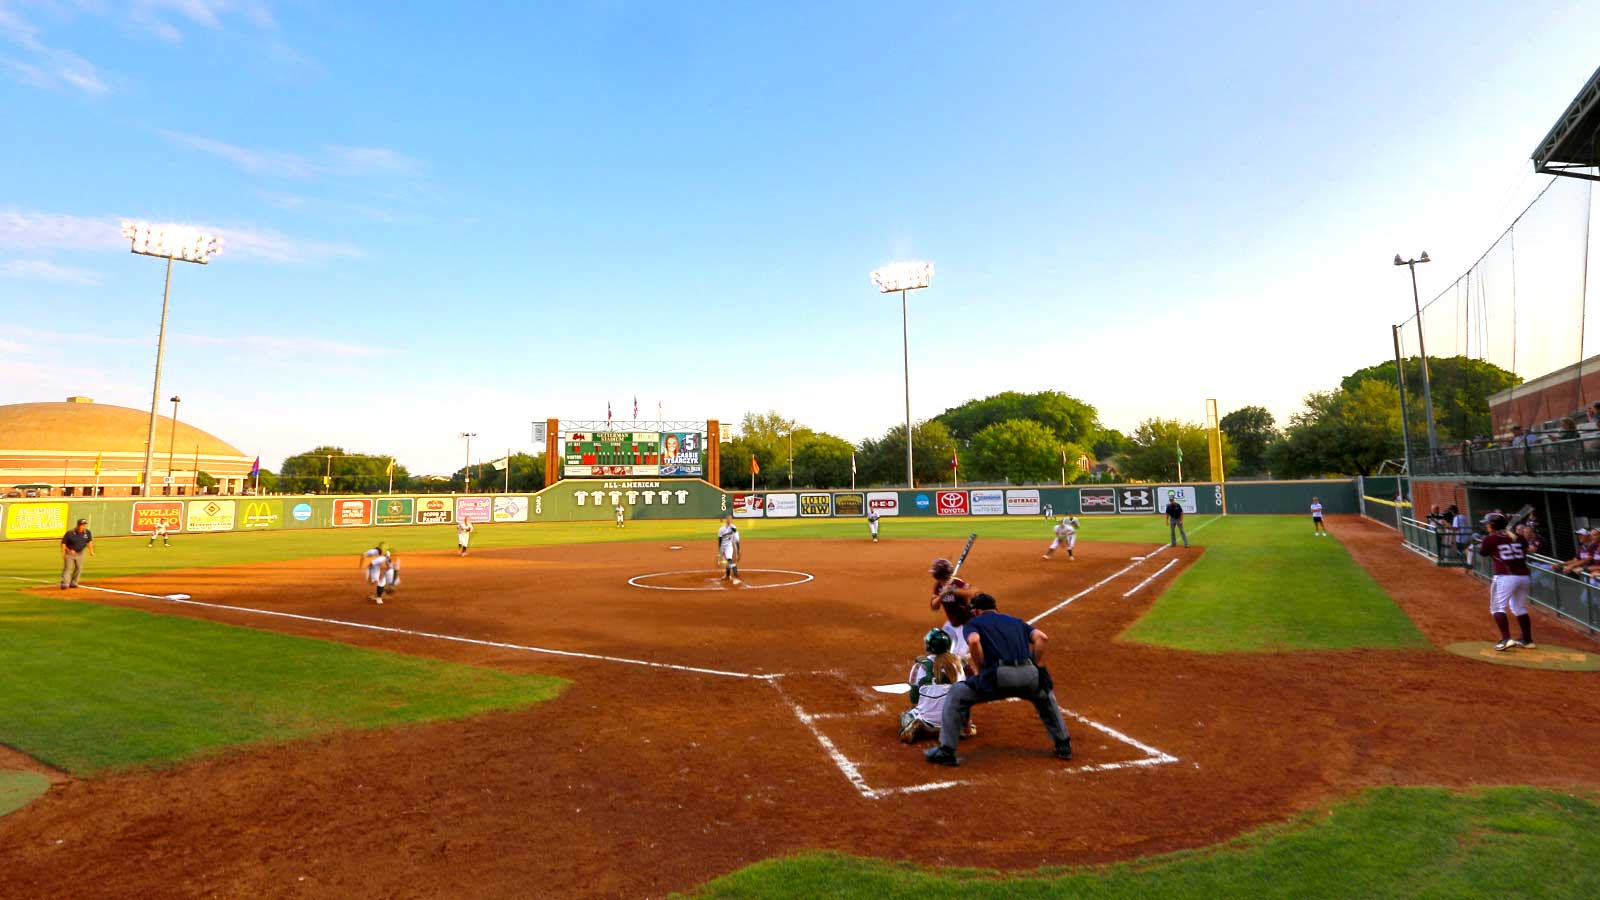 Getterman Stadium opened in 1999 and houses one of the nation's premier collegiate softball programs.